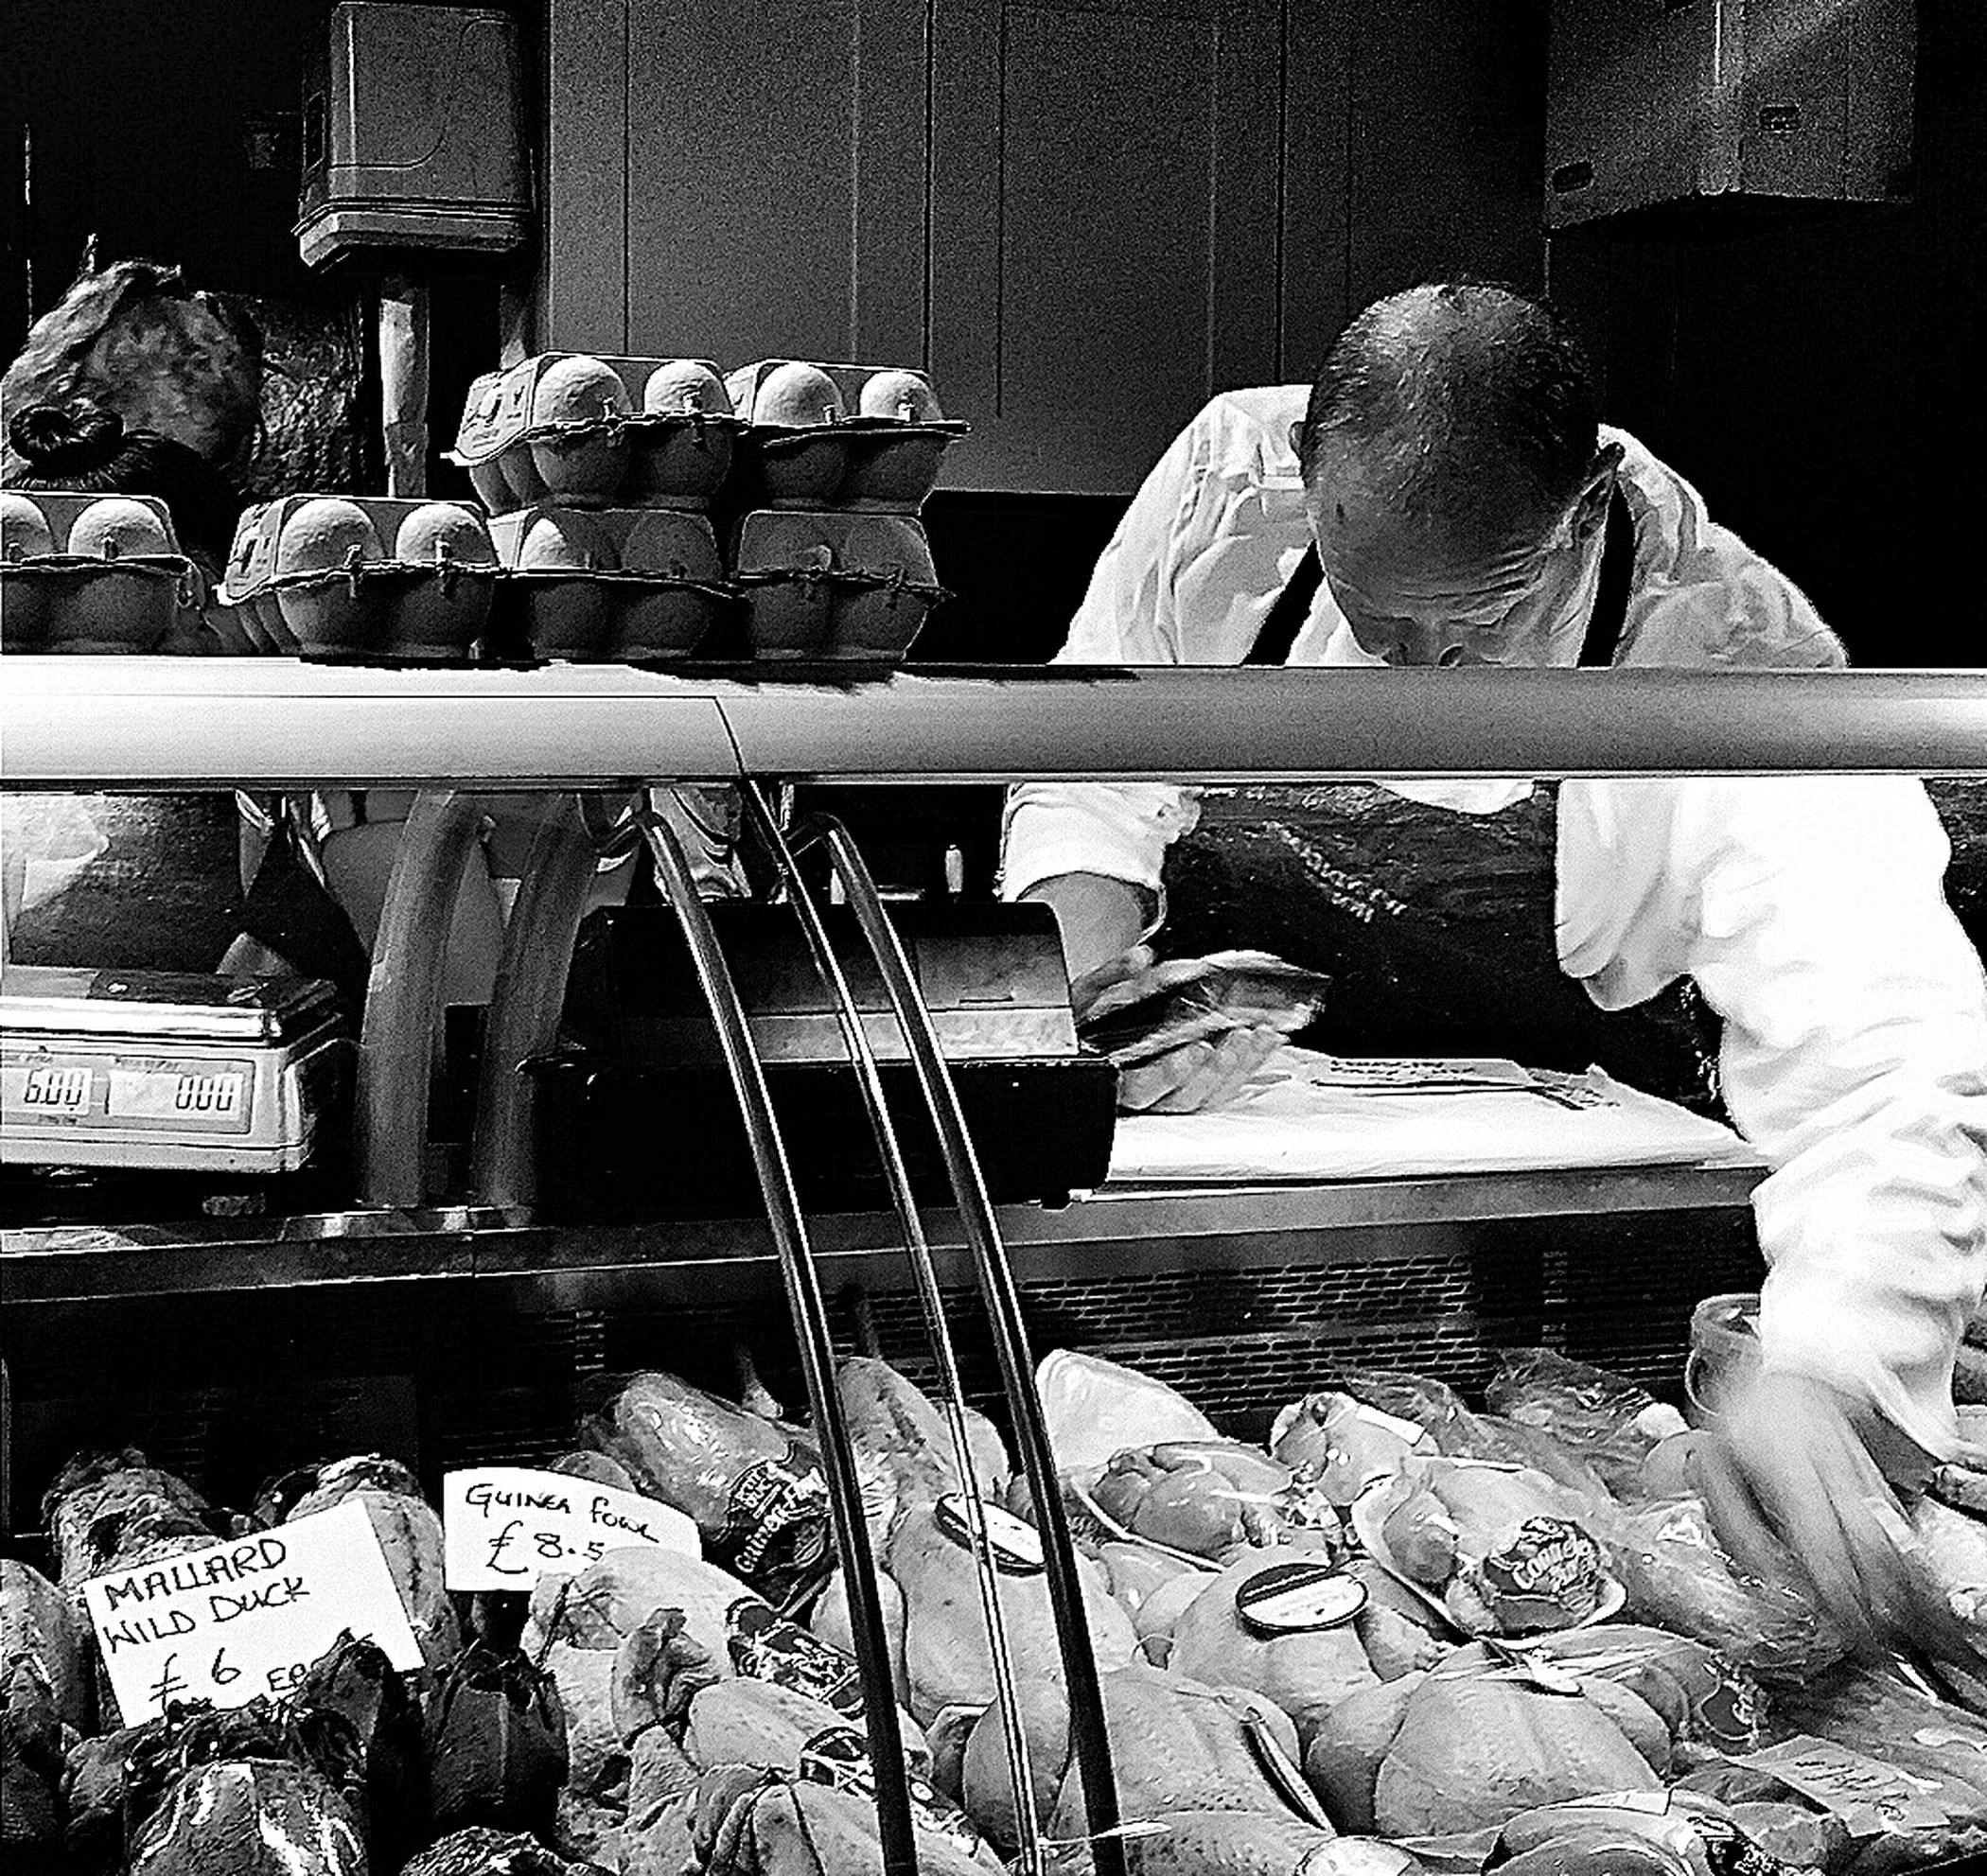 Game Birds Stall Specialty Food Food Market Borough Market 1014 1276 London England Travelphotogrqphy